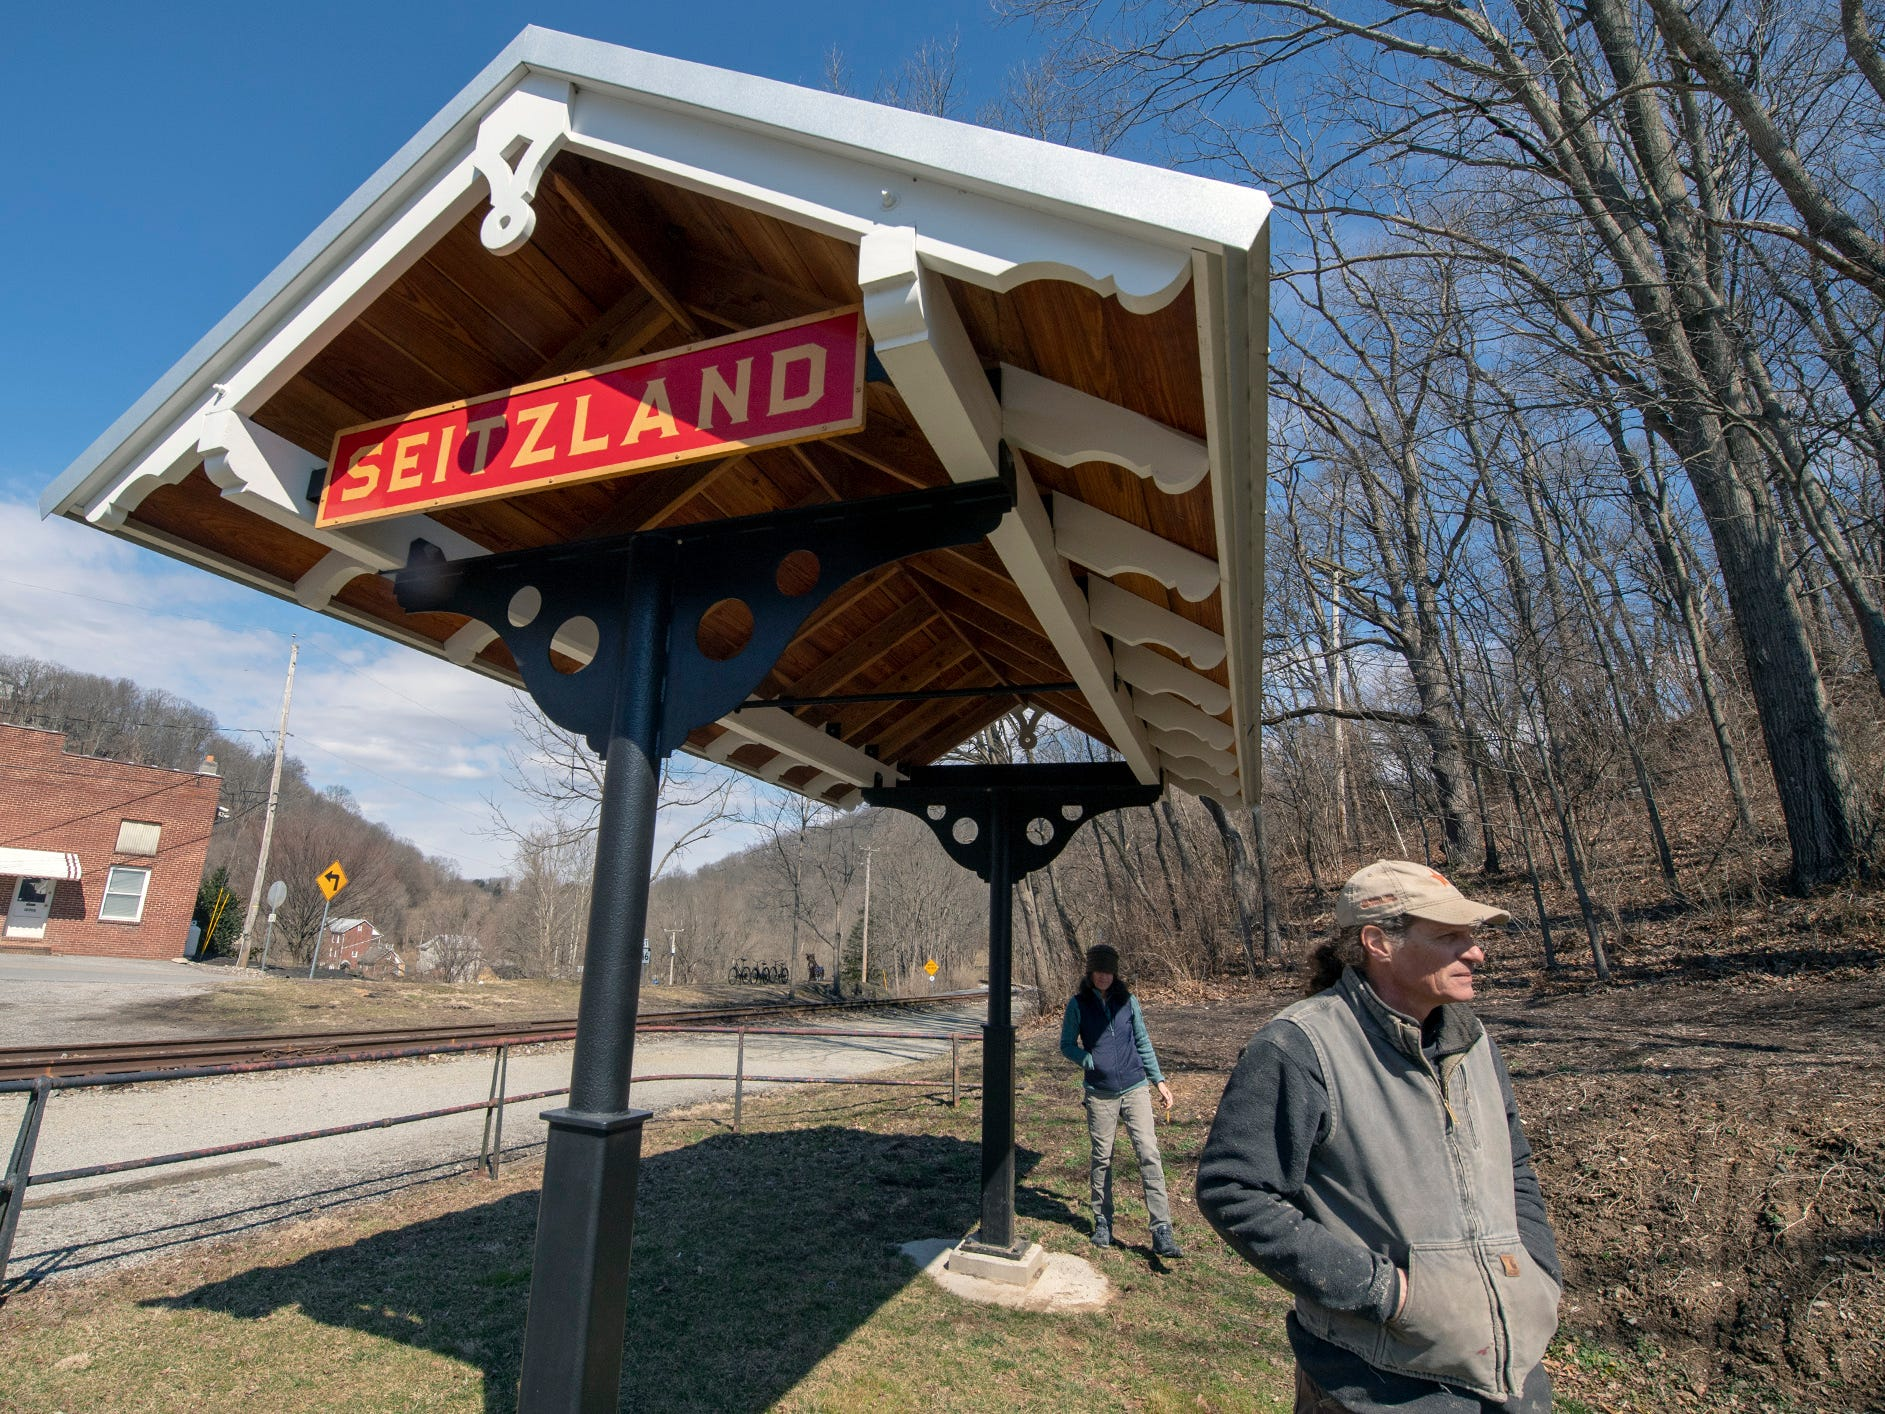 David Keller, right, and Ellen Darby stand at the Seitzland train station they built next to the York County Heritage Rail Trail.